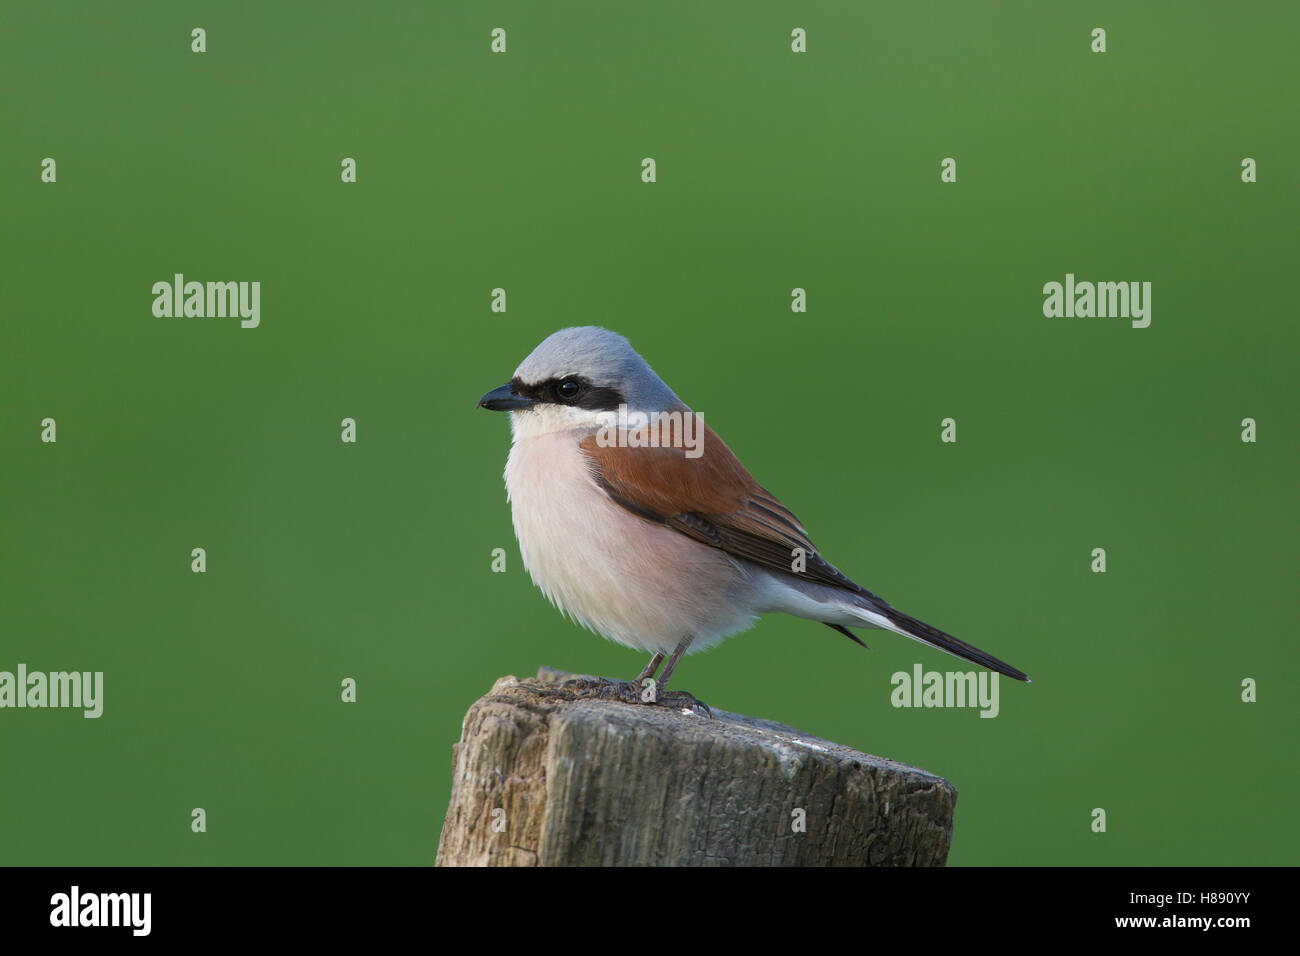 Red-backed shrike (Lanius collurio) male perched on wooden fence post in meadow in spring - Stock Image